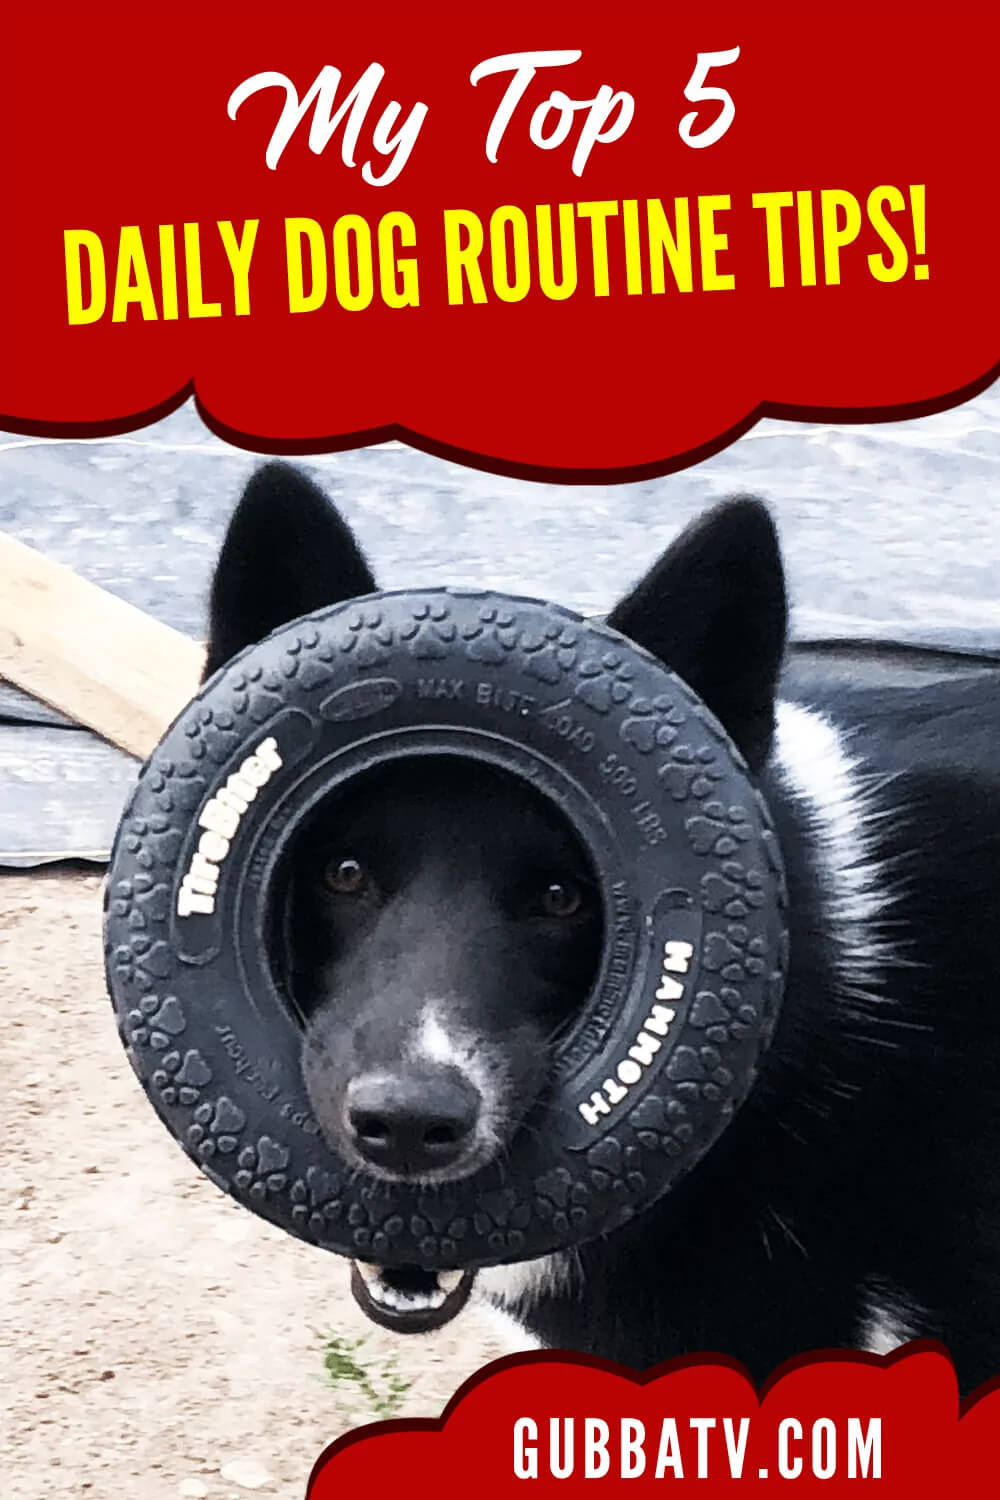 Top 5 Daily Dog Routine Tips!